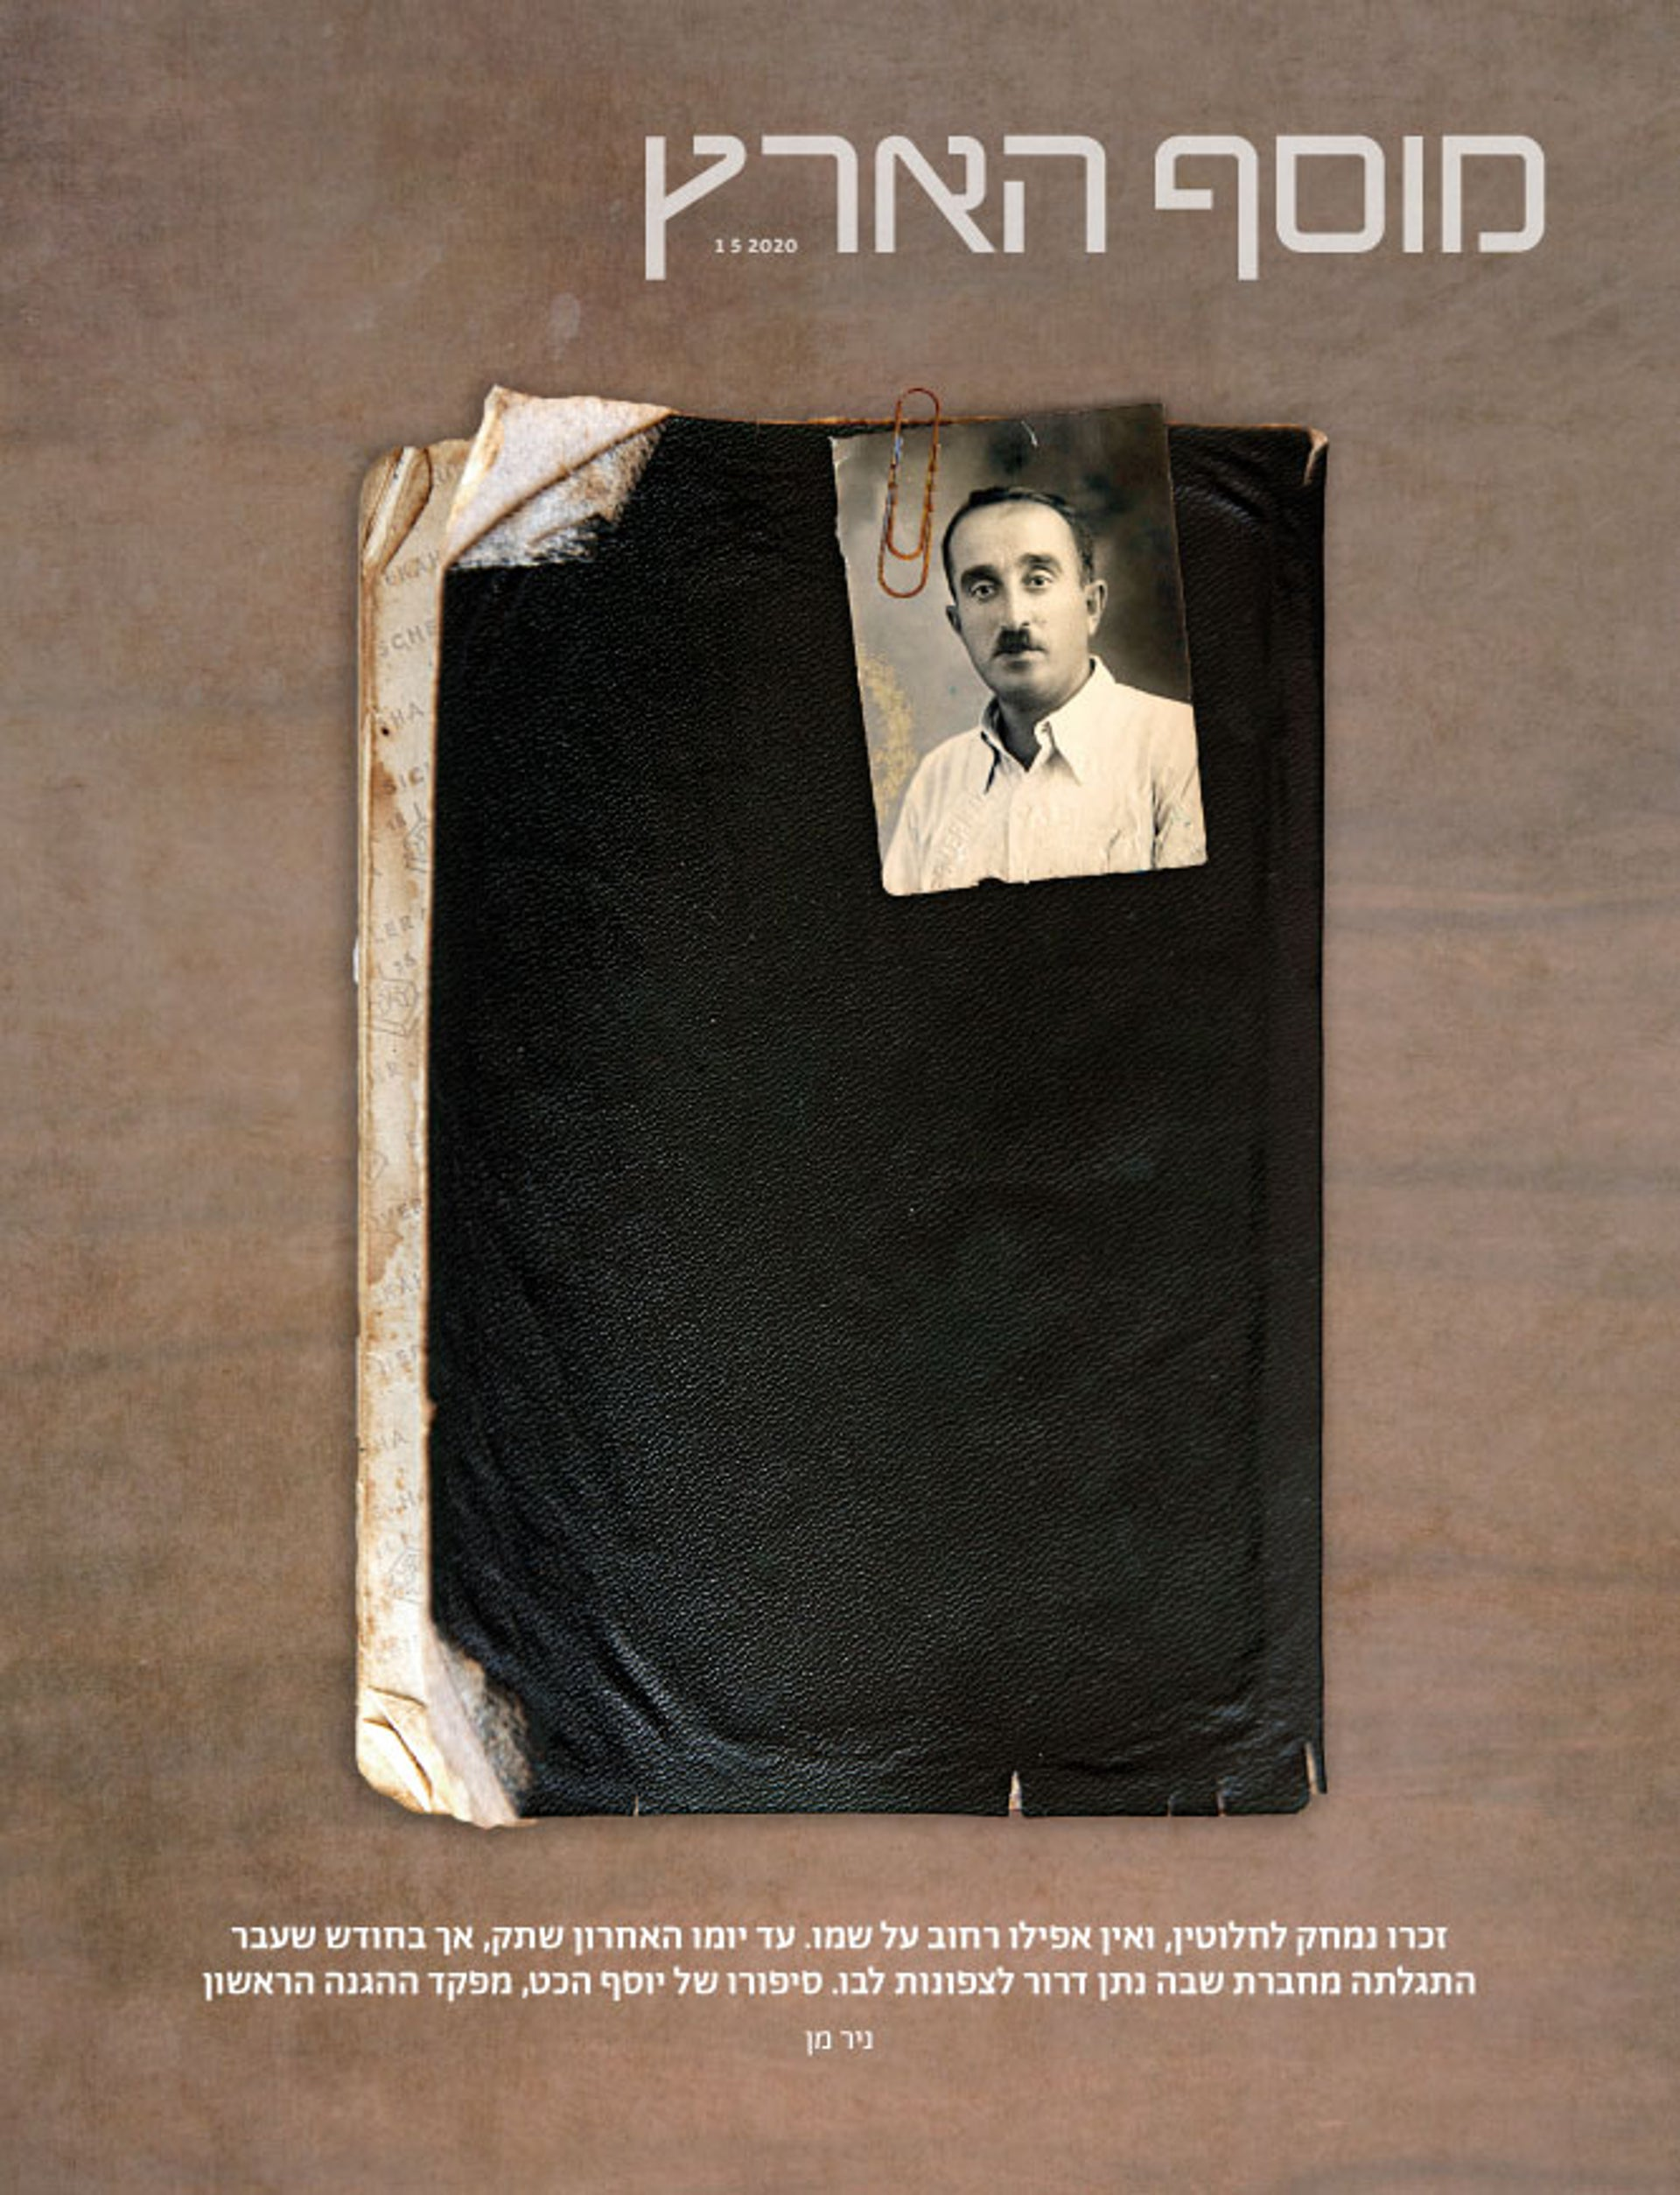 Hecht's headshot and his notebook.